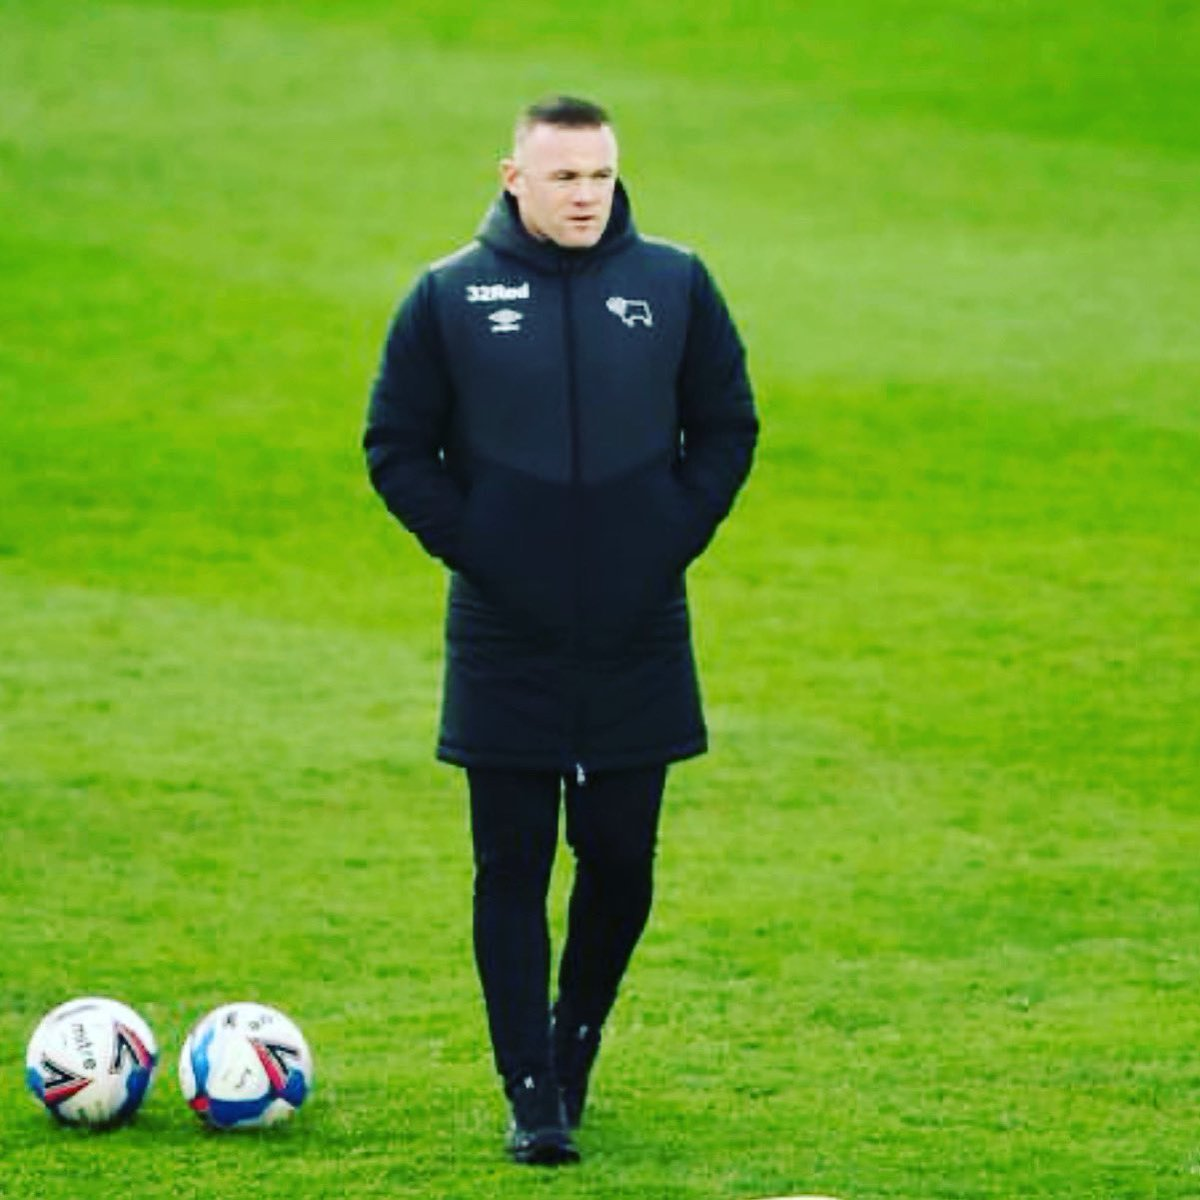 2/2.......Thank you for letting me be part of it from start to finish.19 years later & 4 kids who have been lucky to witness you playing. We love you!!  Good luck in the next chapter of your career as manger, sure you'll be great, but remember, all you can do is try your best. 💪🏼